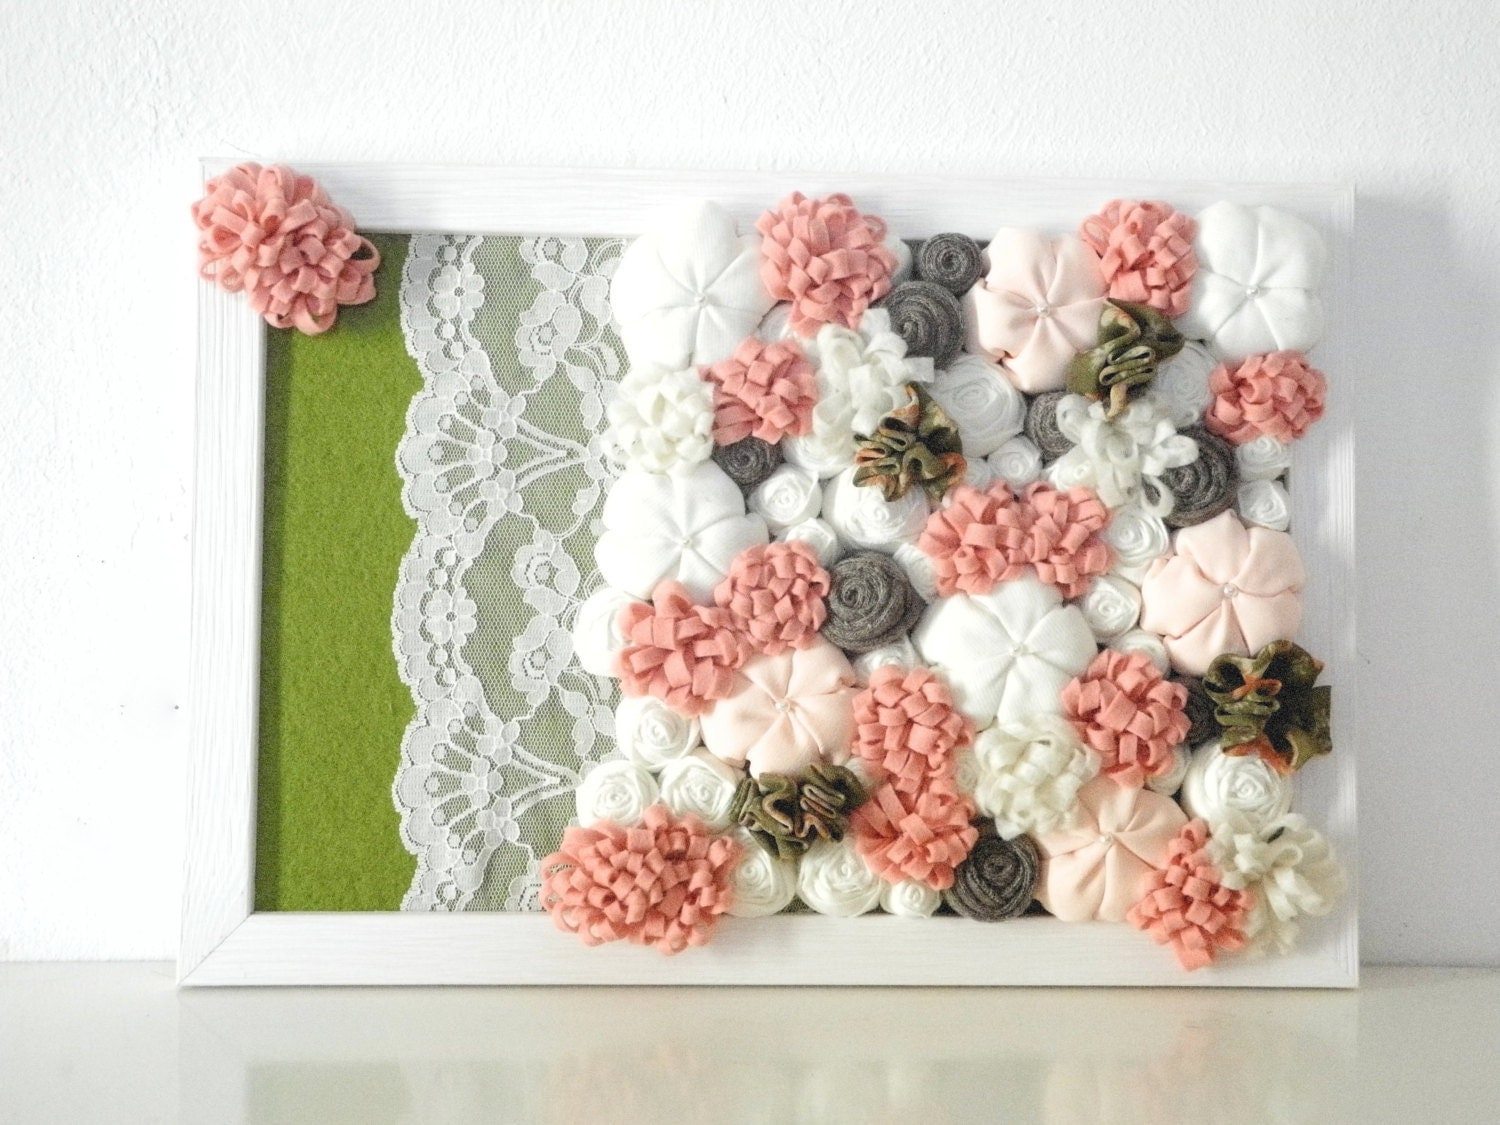 Framed fabric flowers home decor 3d design wall art pink white for Home decorations with flowers